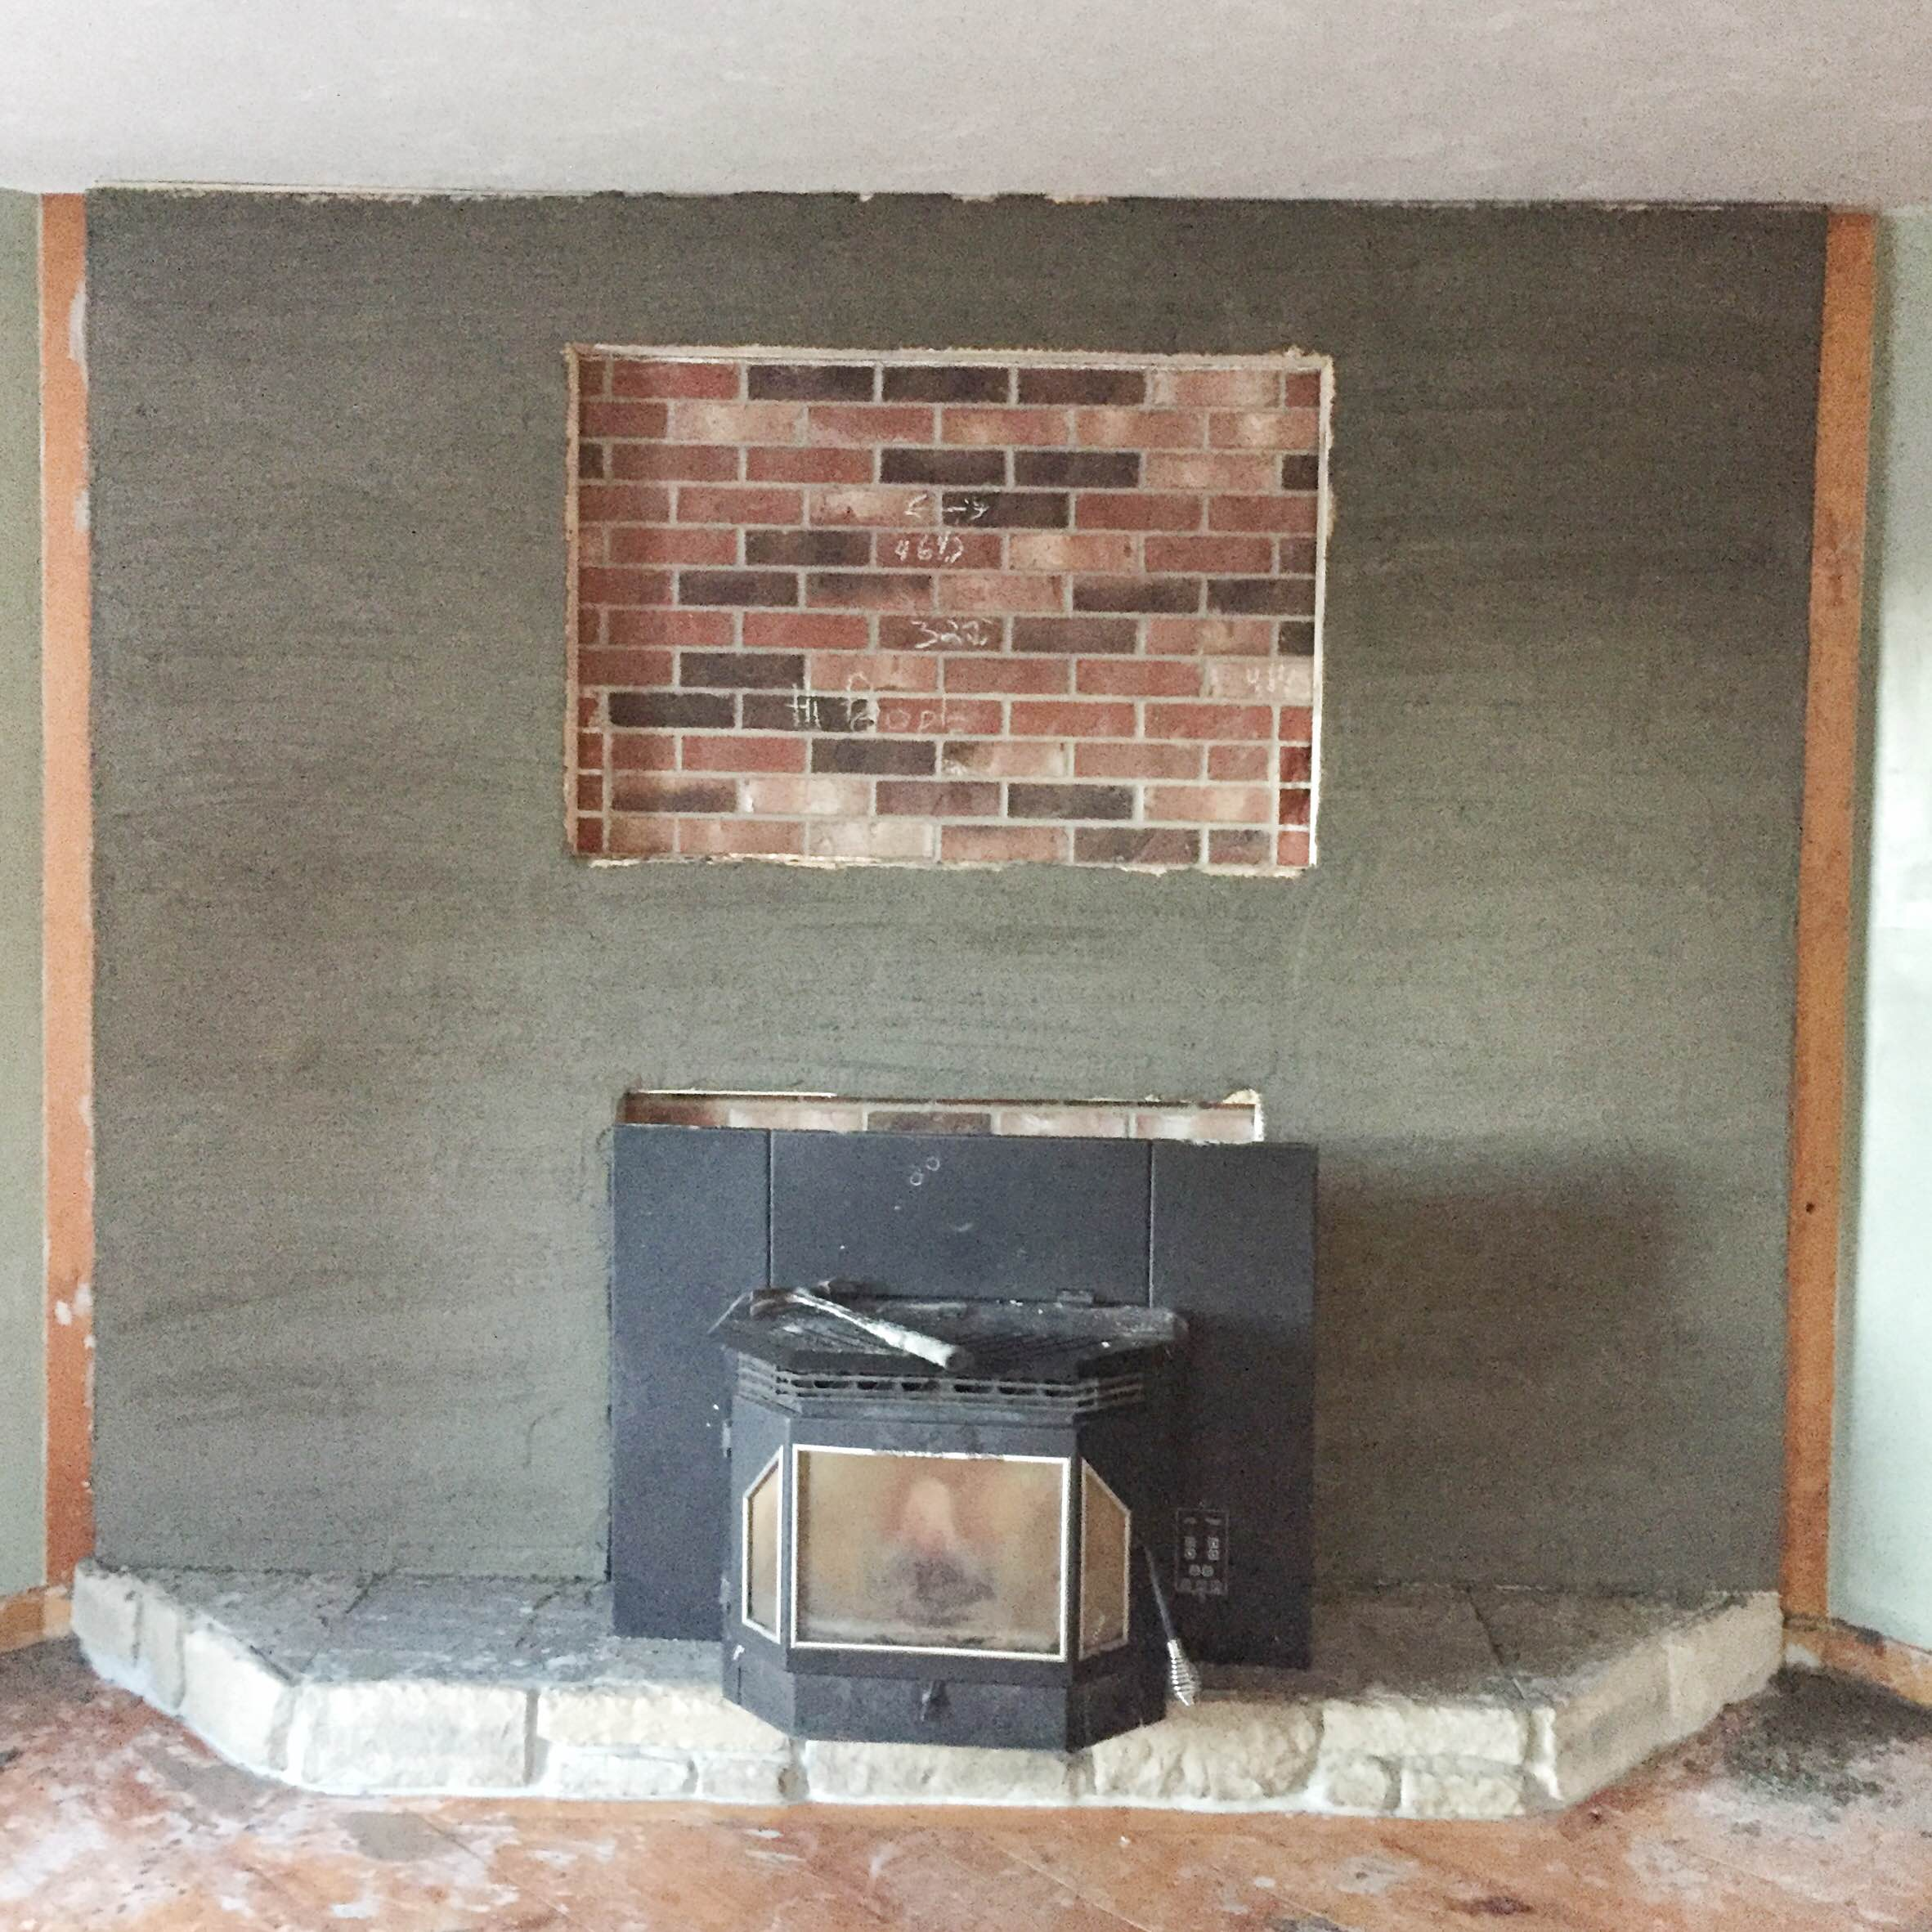 Brick fireplace makeover | Brick to stone veneer fireplace makeover | How to do a stone veneer fire place | GinaKirk.com